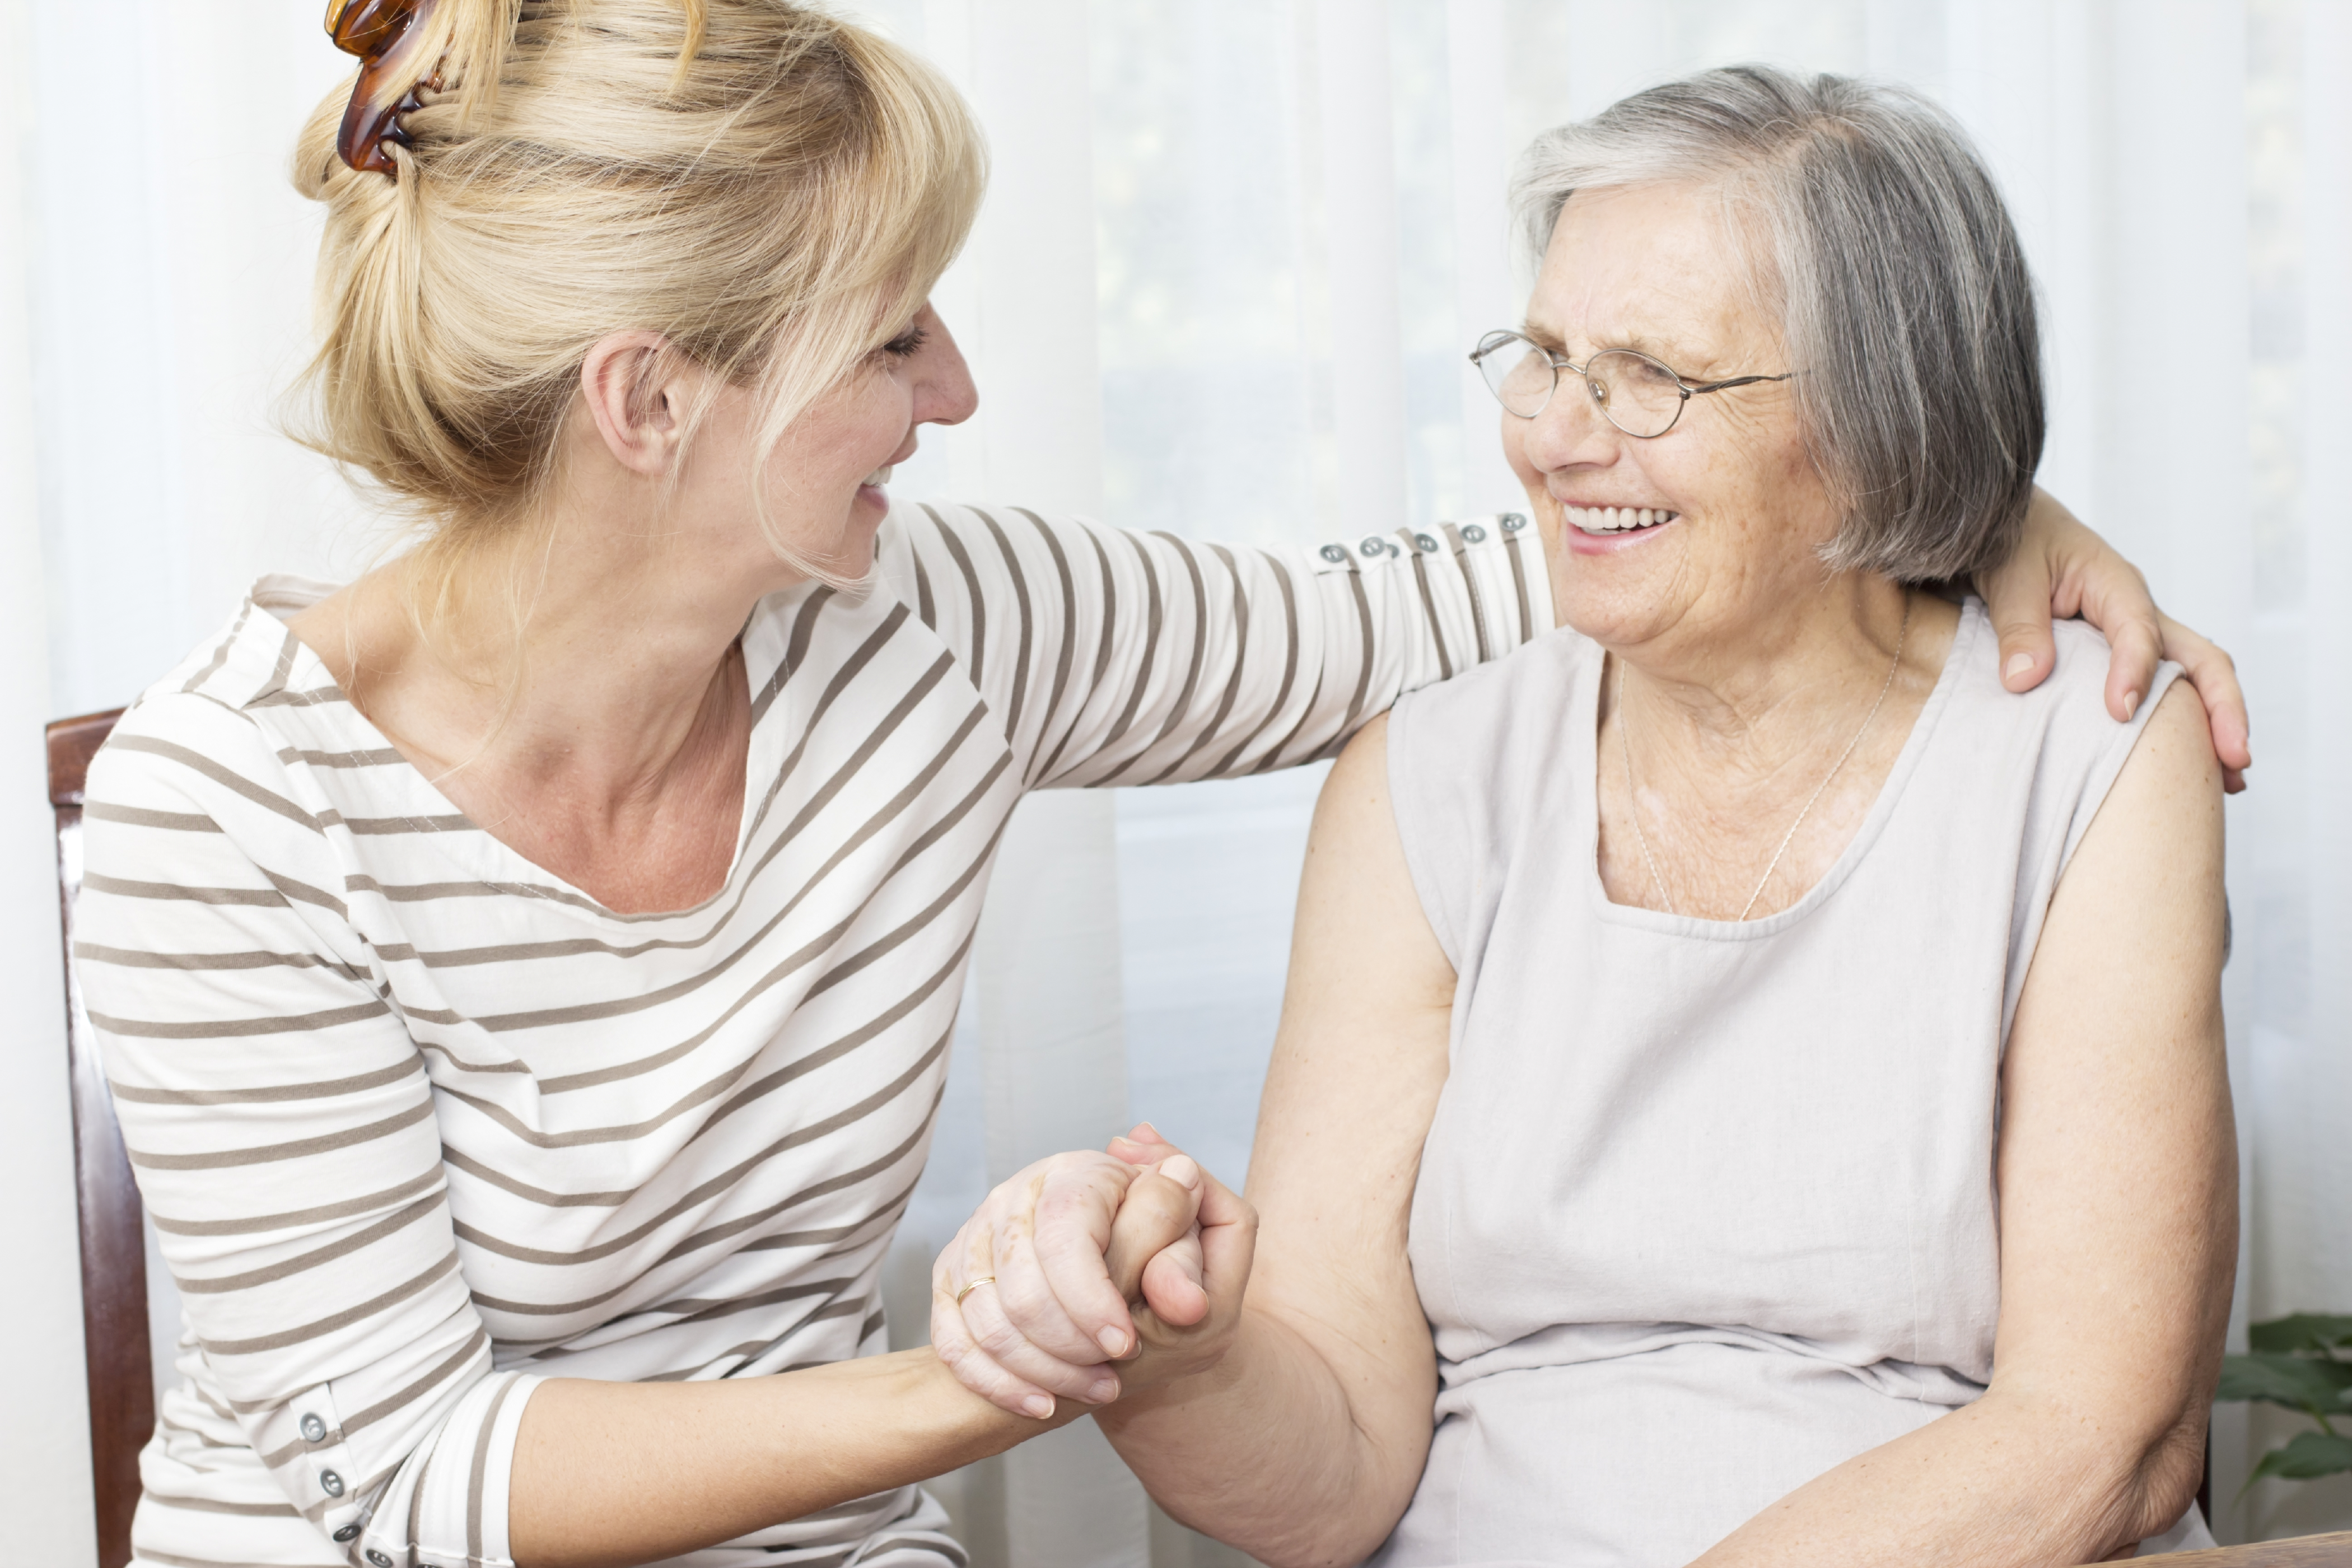 5 Ways to Maintain Your Health and Happiness as a Caregiver